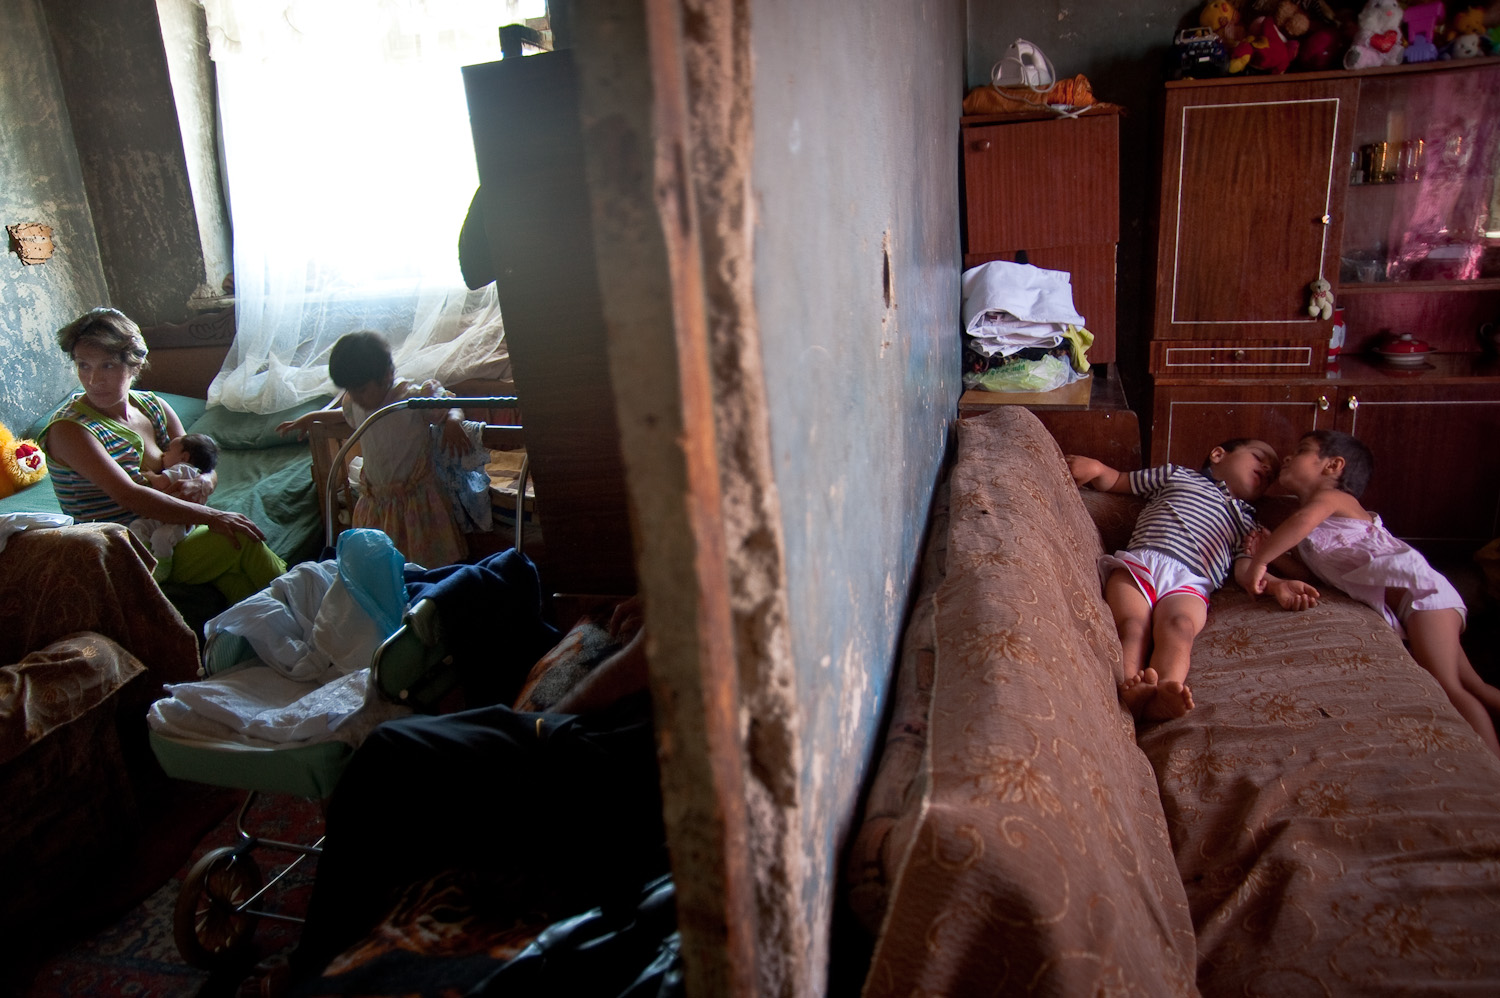 Arthur, Gayane and their 8 children live in this two-room dormitory space in Vartashen. They had 10 children but two died as children - one from a severe case of dysentery and the other from a tragic accident when at home alone.